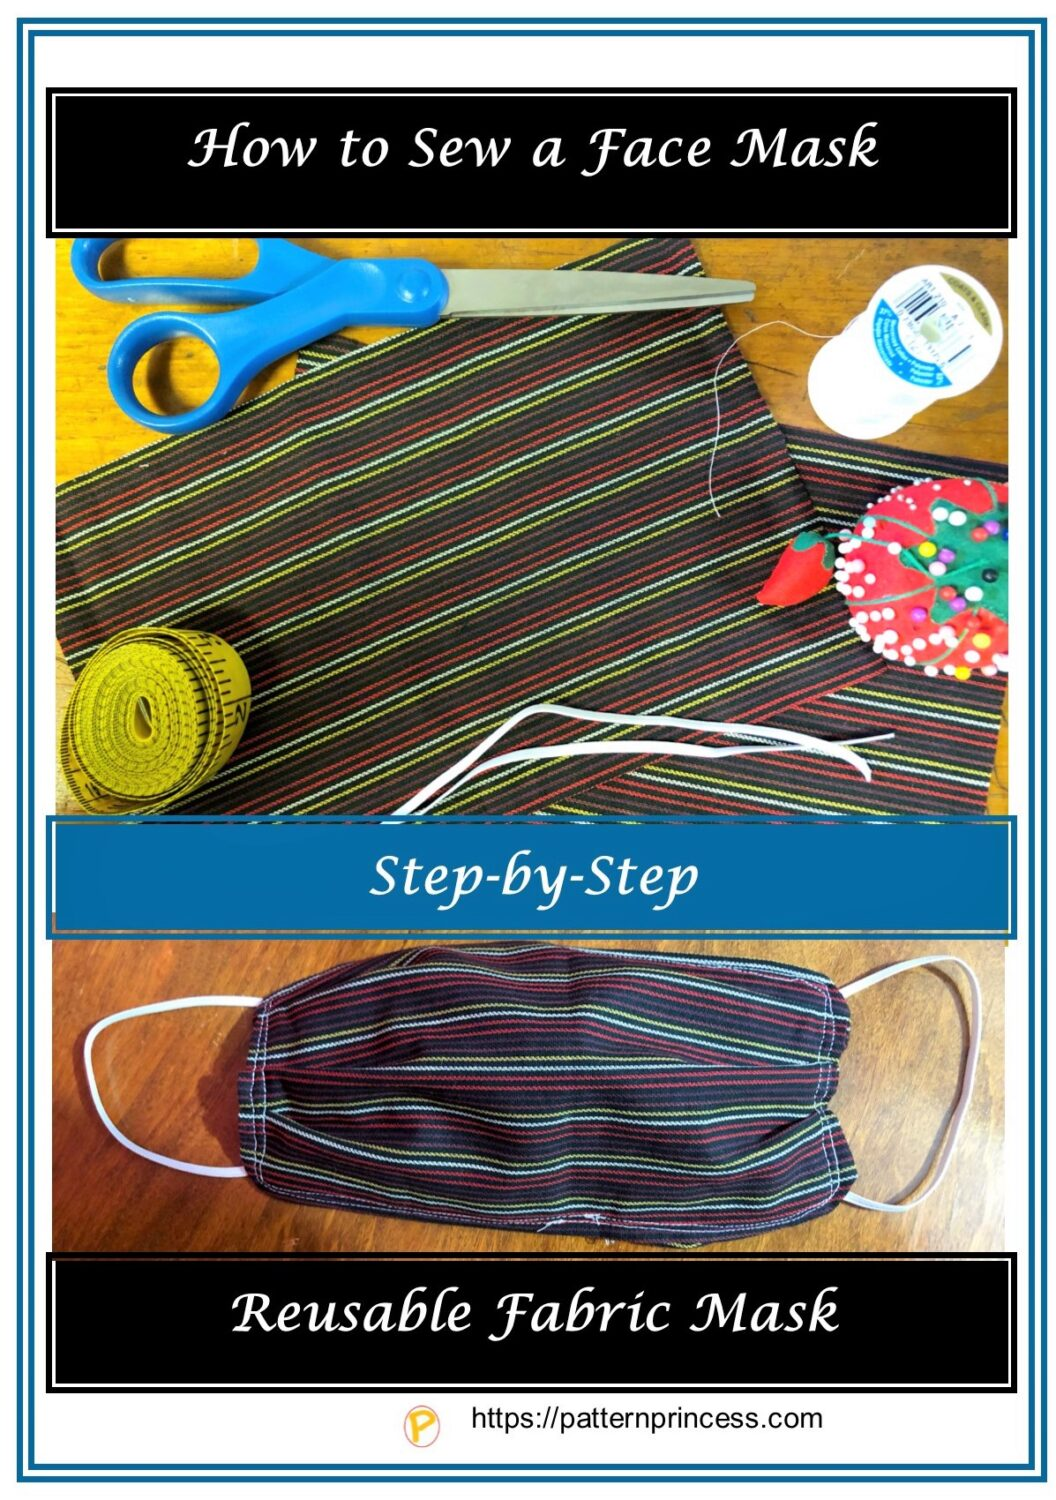 How to Sew an Air Mask